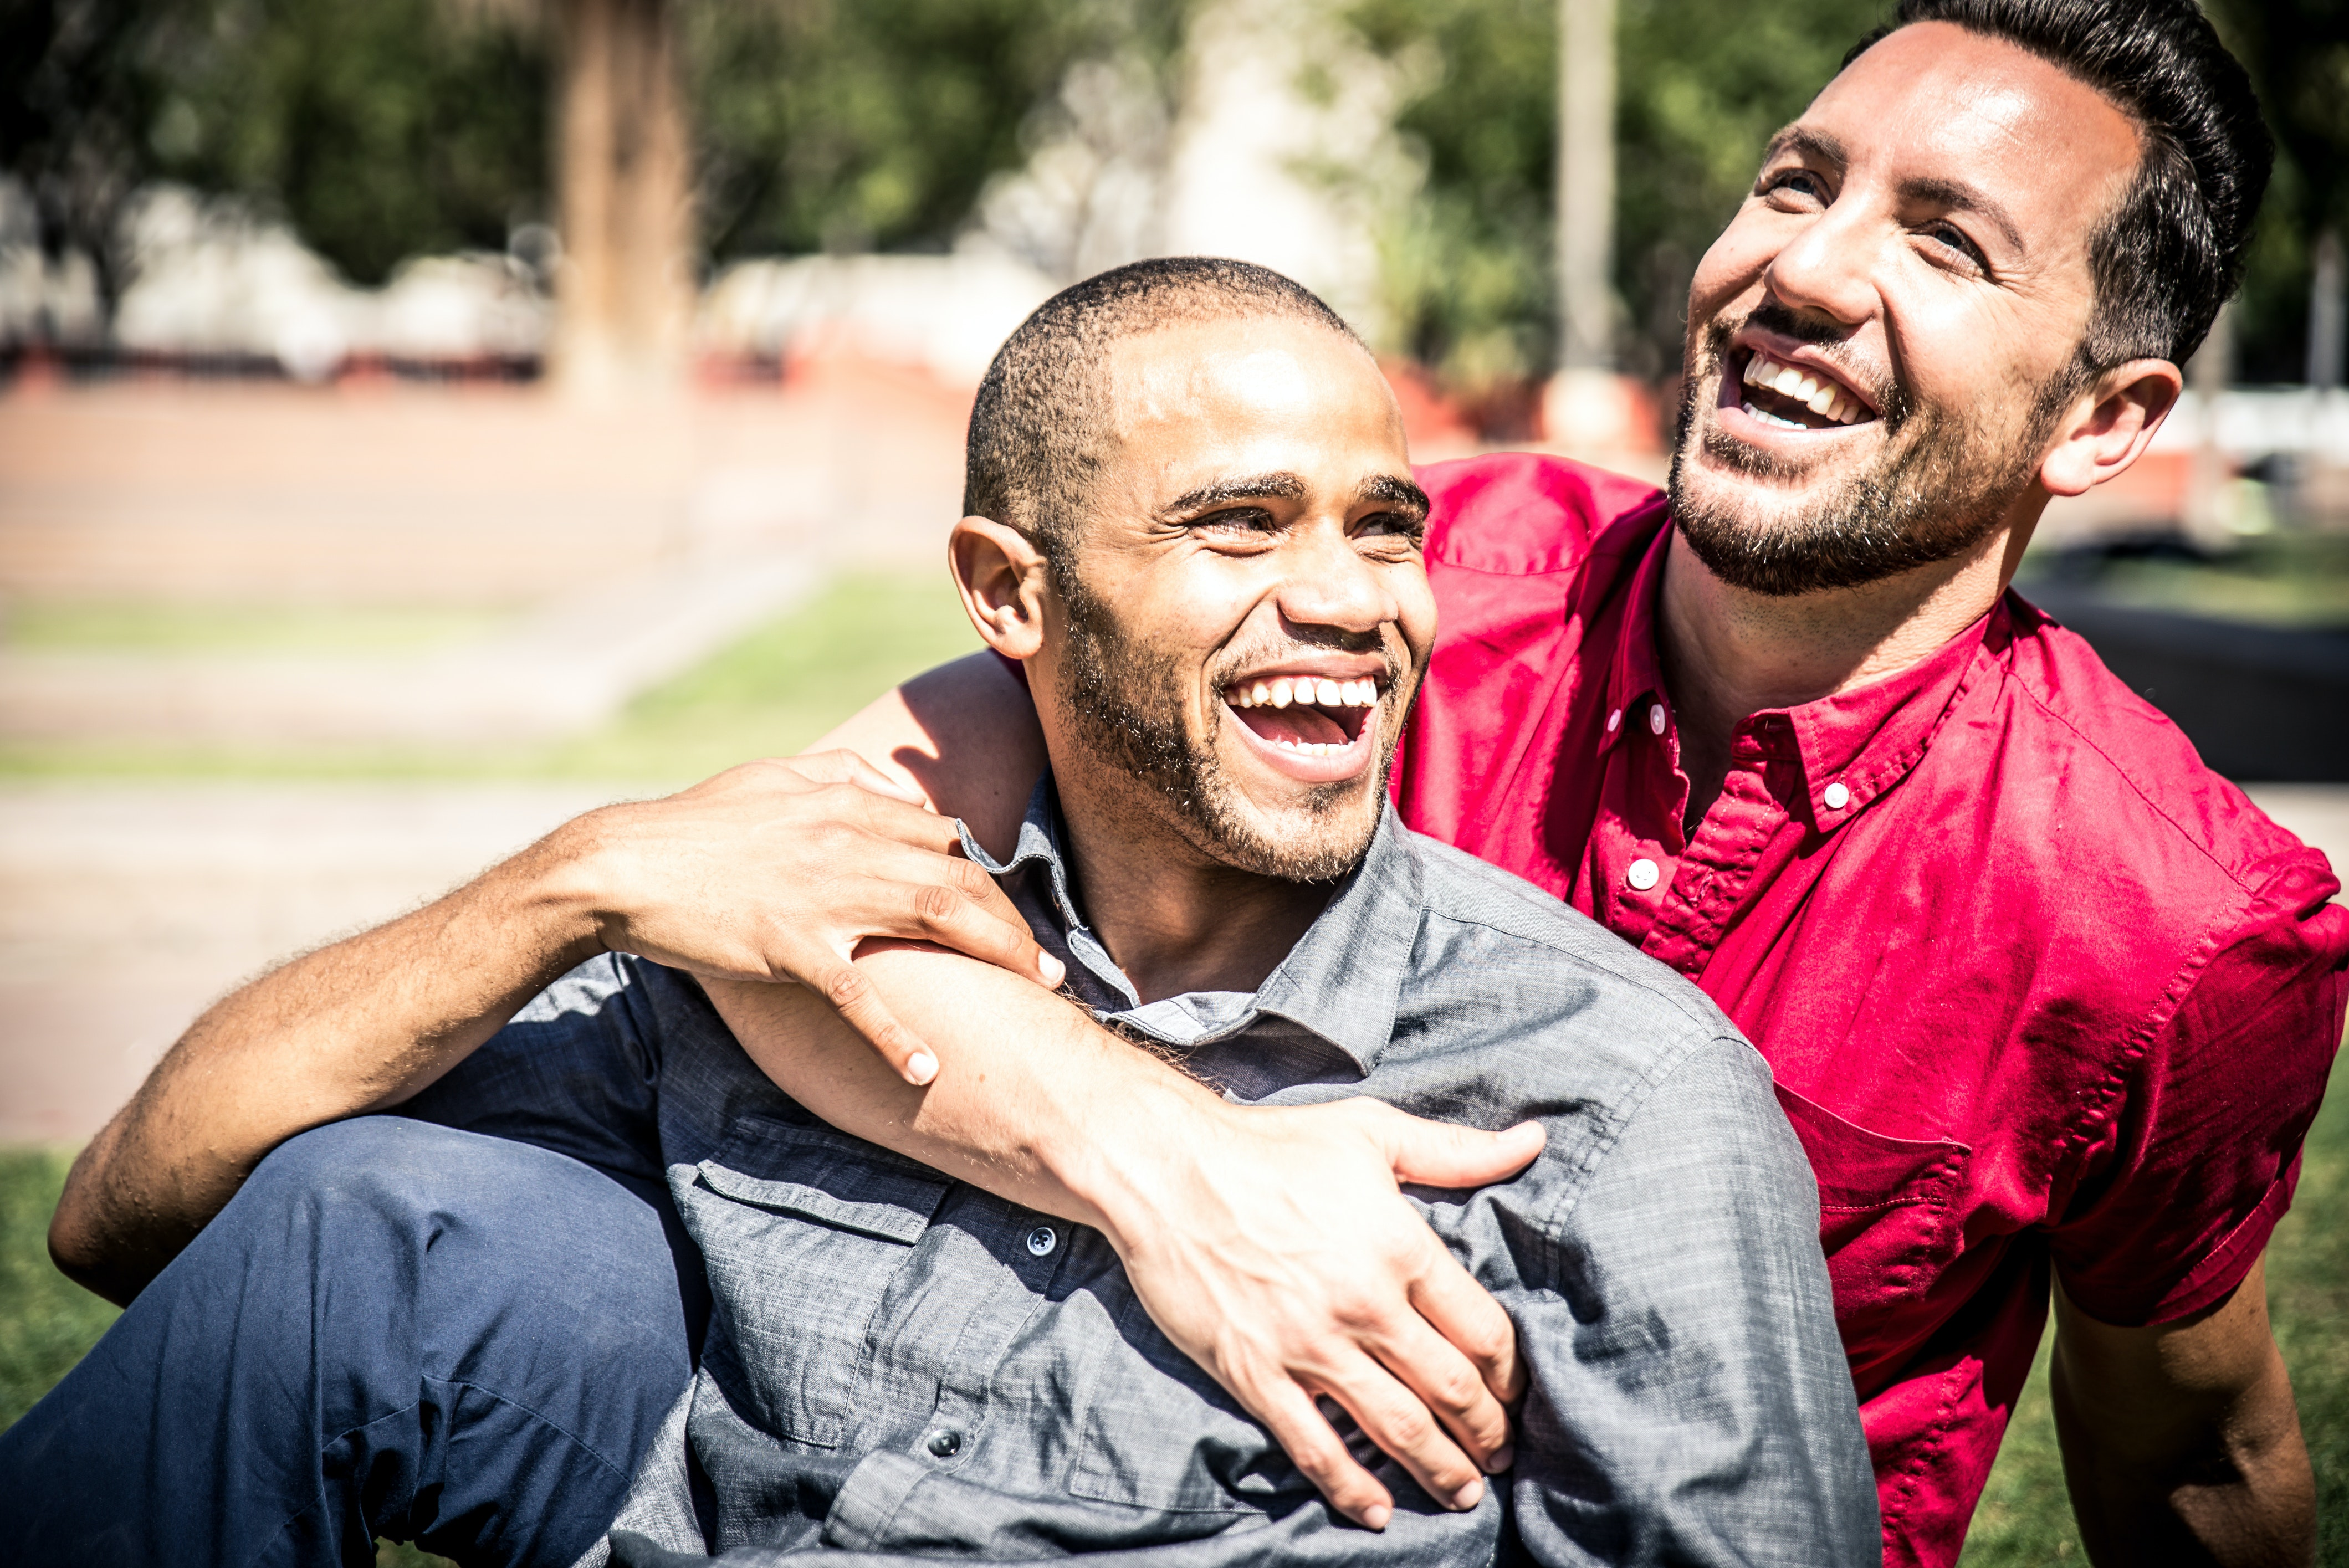 Two men sit in a sunny park and hug each other. They are laughing.